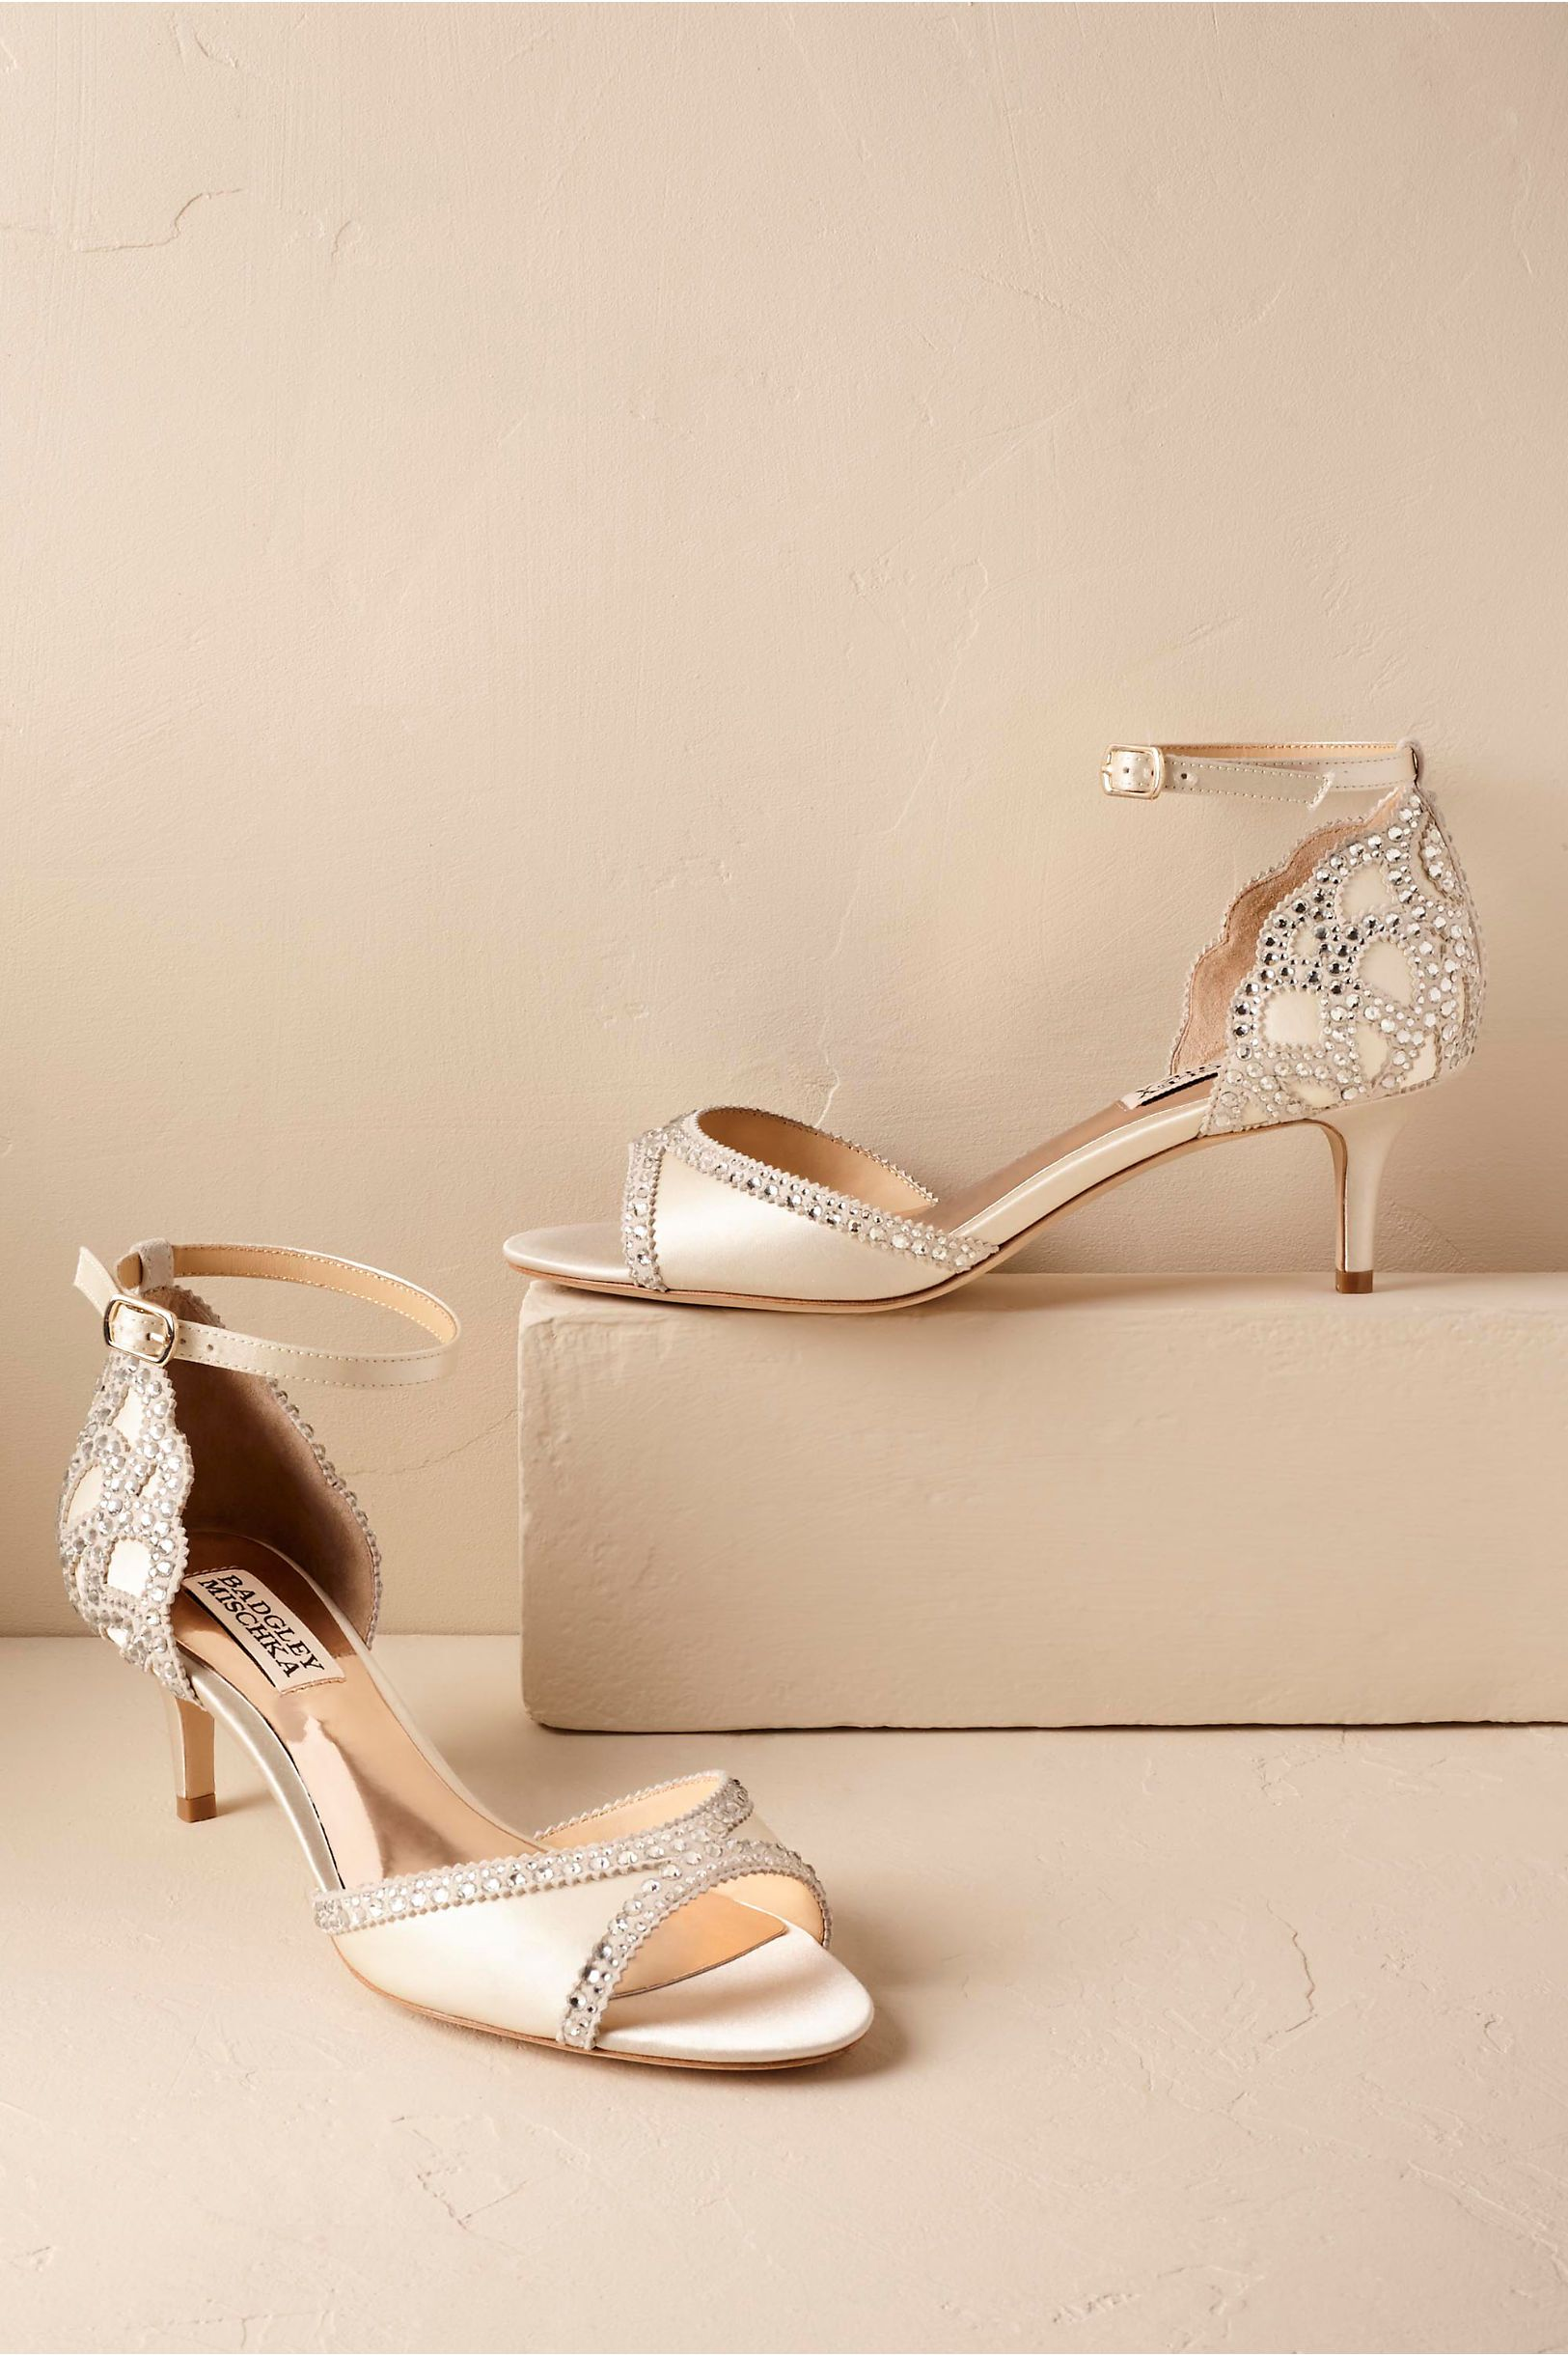 308dc51d69cb1a BHLDN s Badgley Mischka Chaumont Heels in Ivory